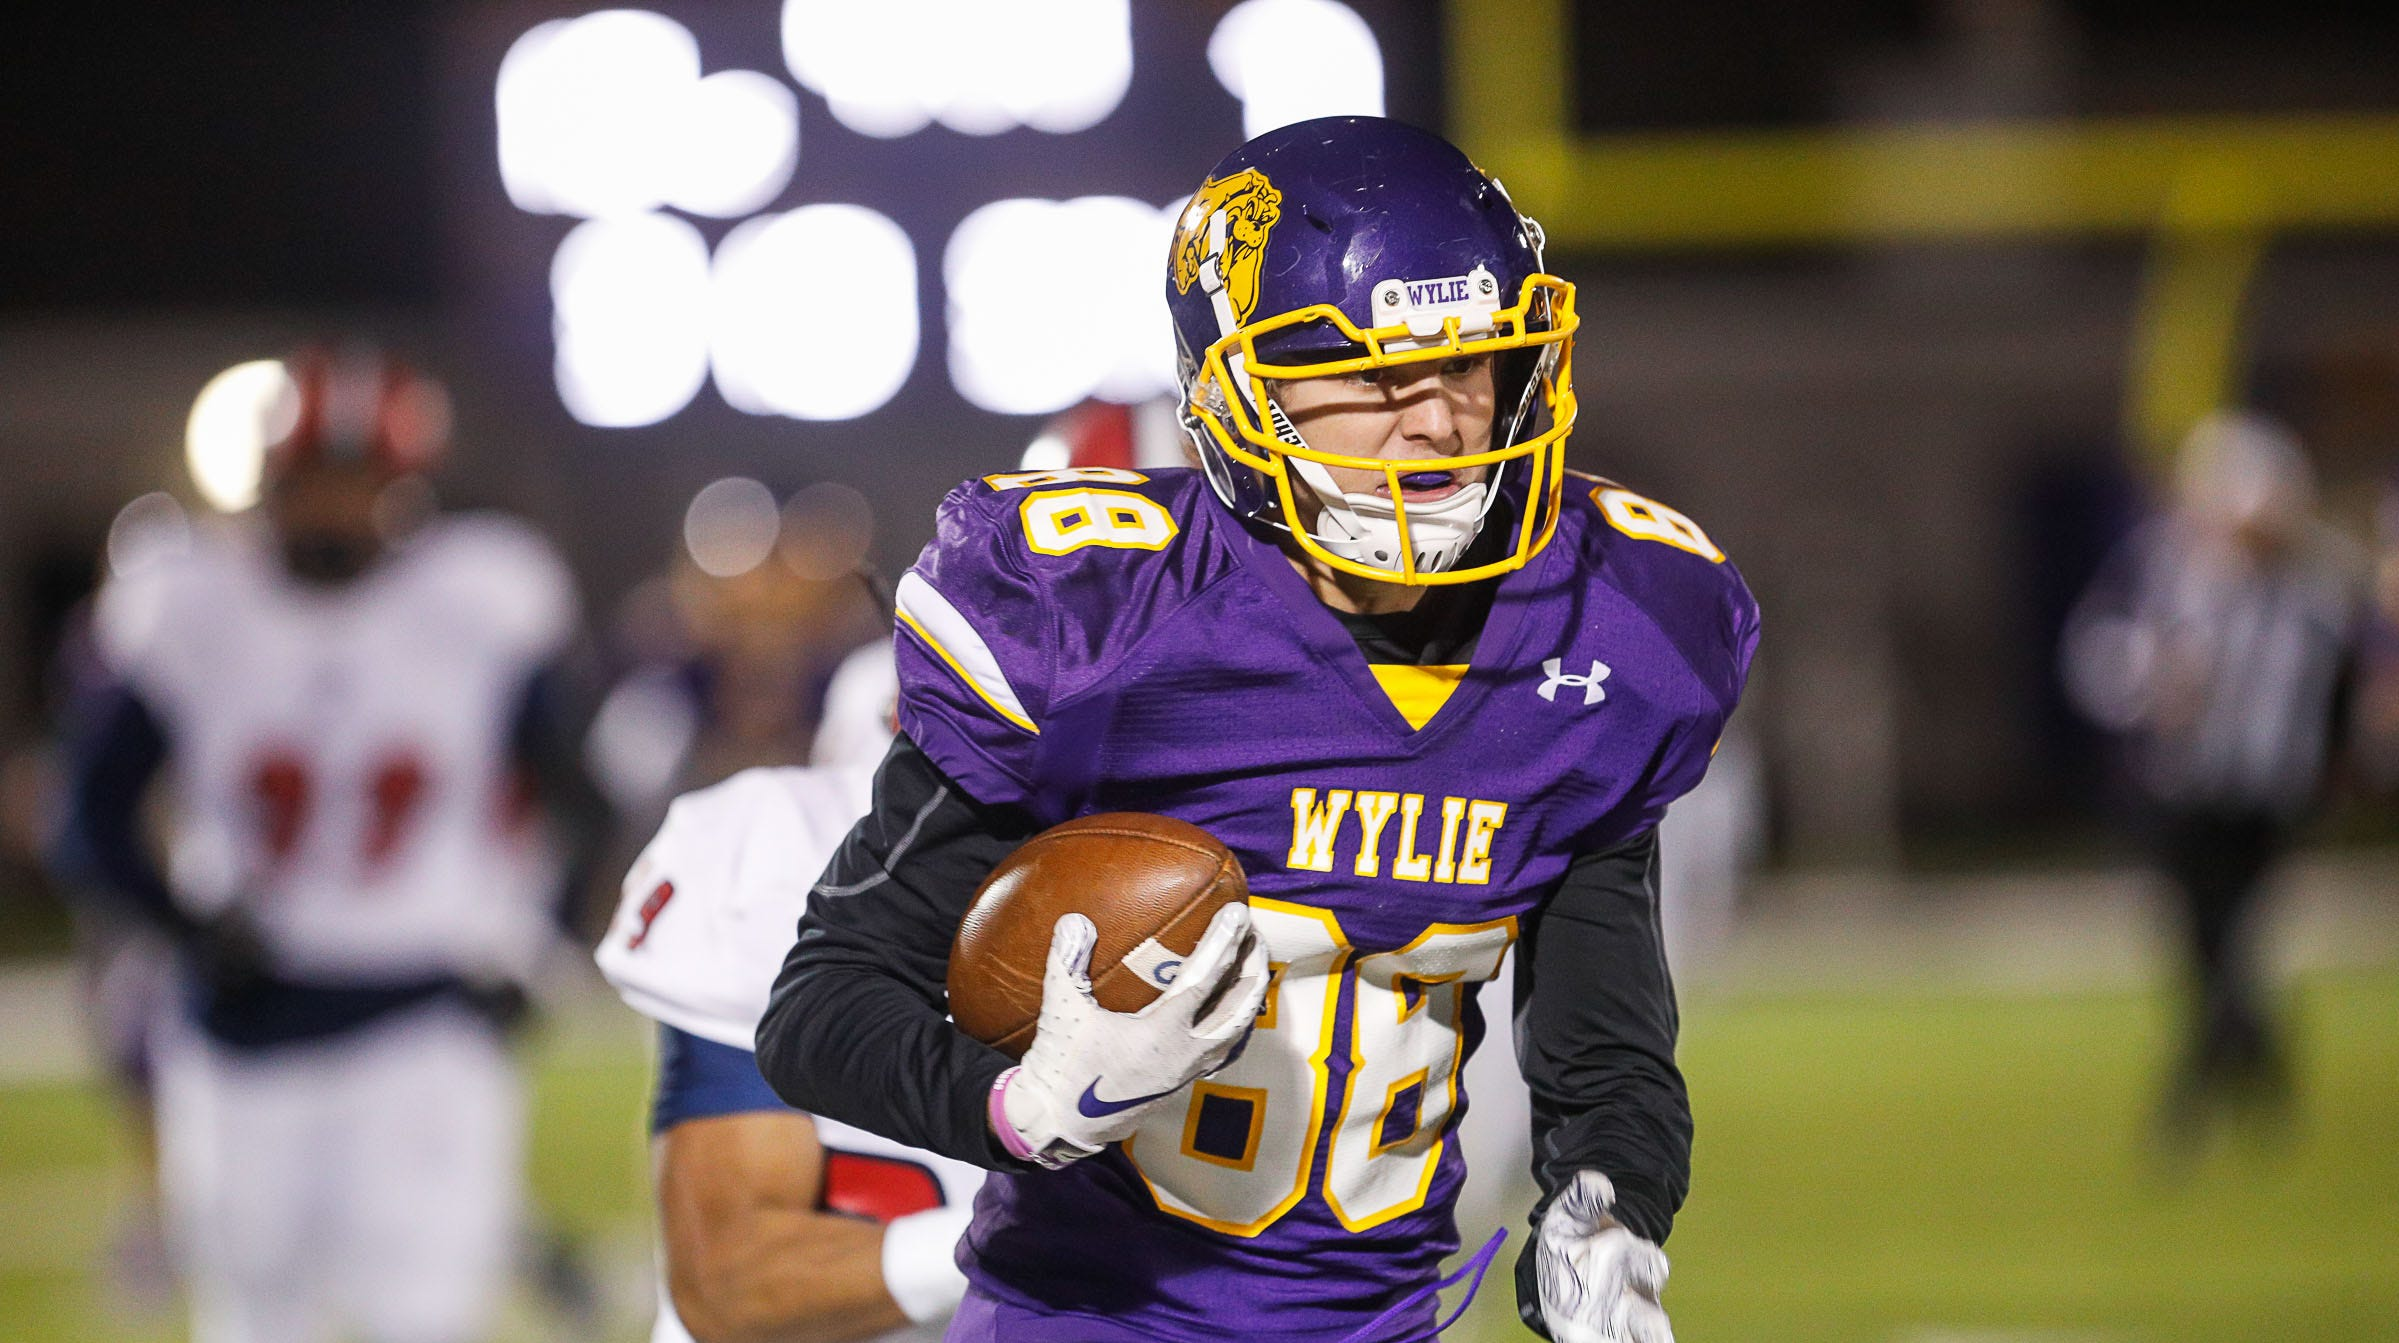 Wylie's Brodey Baker runs the ball Friday during a 22-19 loss to Plainview to end the season.